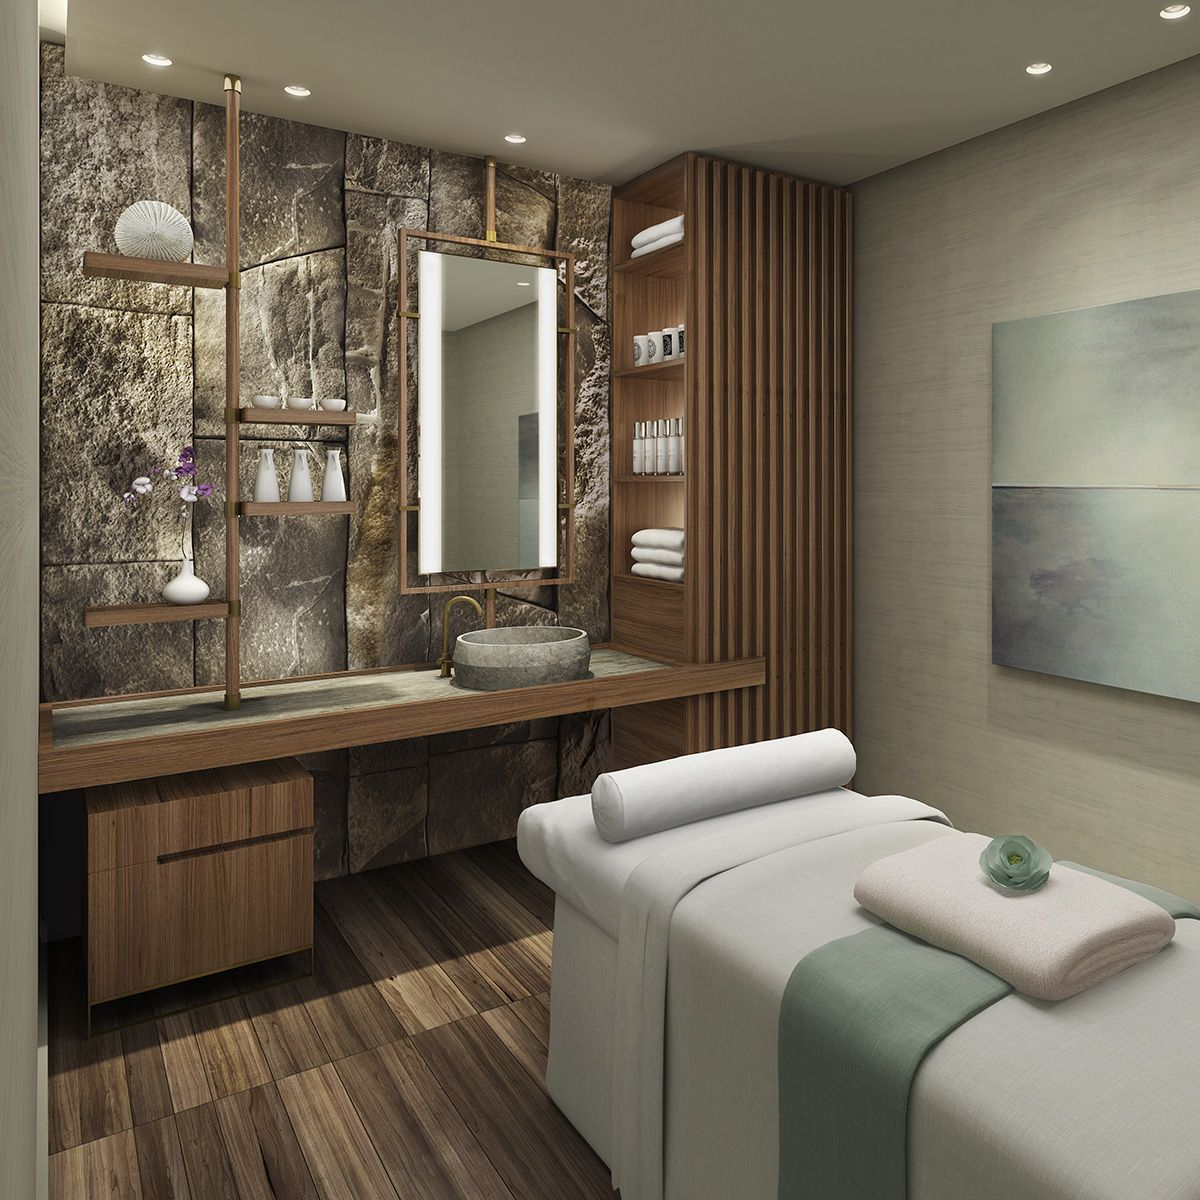 Interior design firm specializing in luxury hospitality